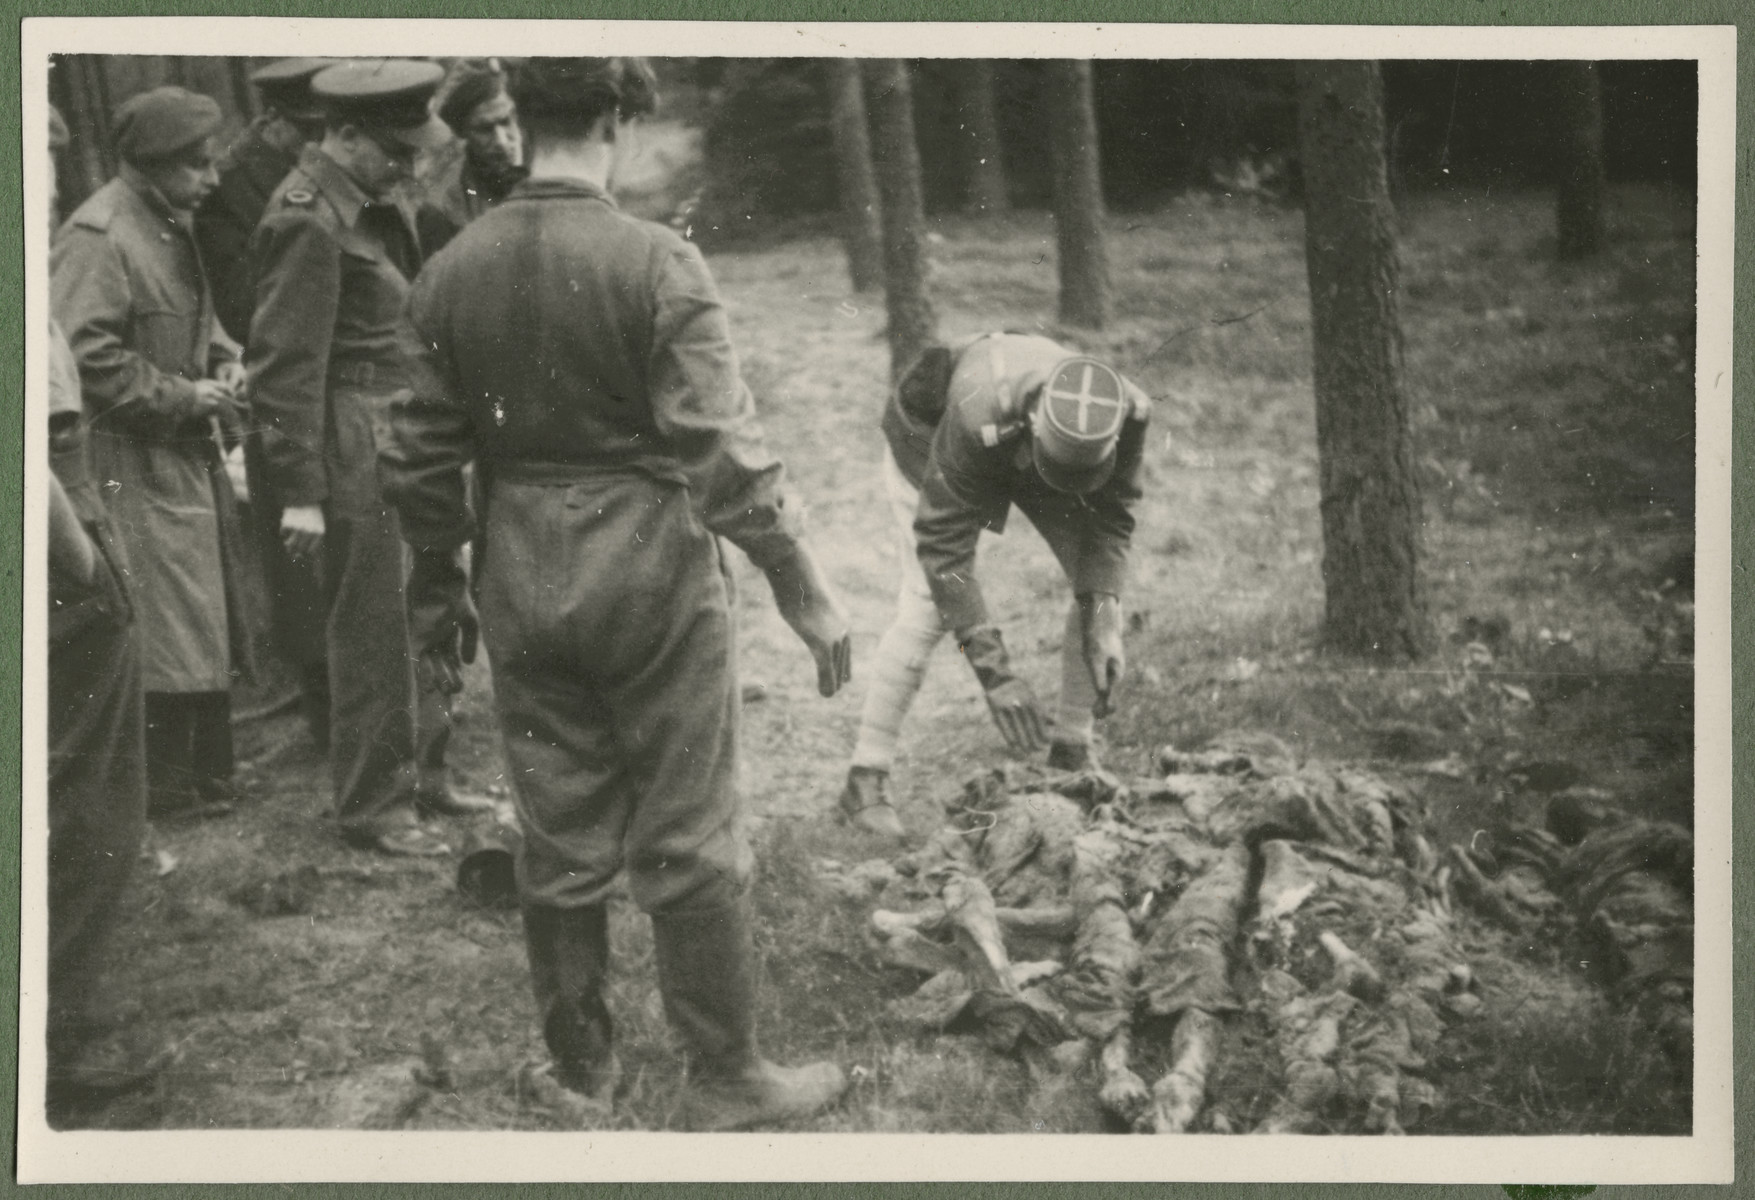 Under the supervision of British troops, German civilians and Nazi officials exhume the corpses of 243 slave laborers for proper reburial.  The victims were shot by their guards on the railway lines at Lueneburg on the way to the Belsen Camp.